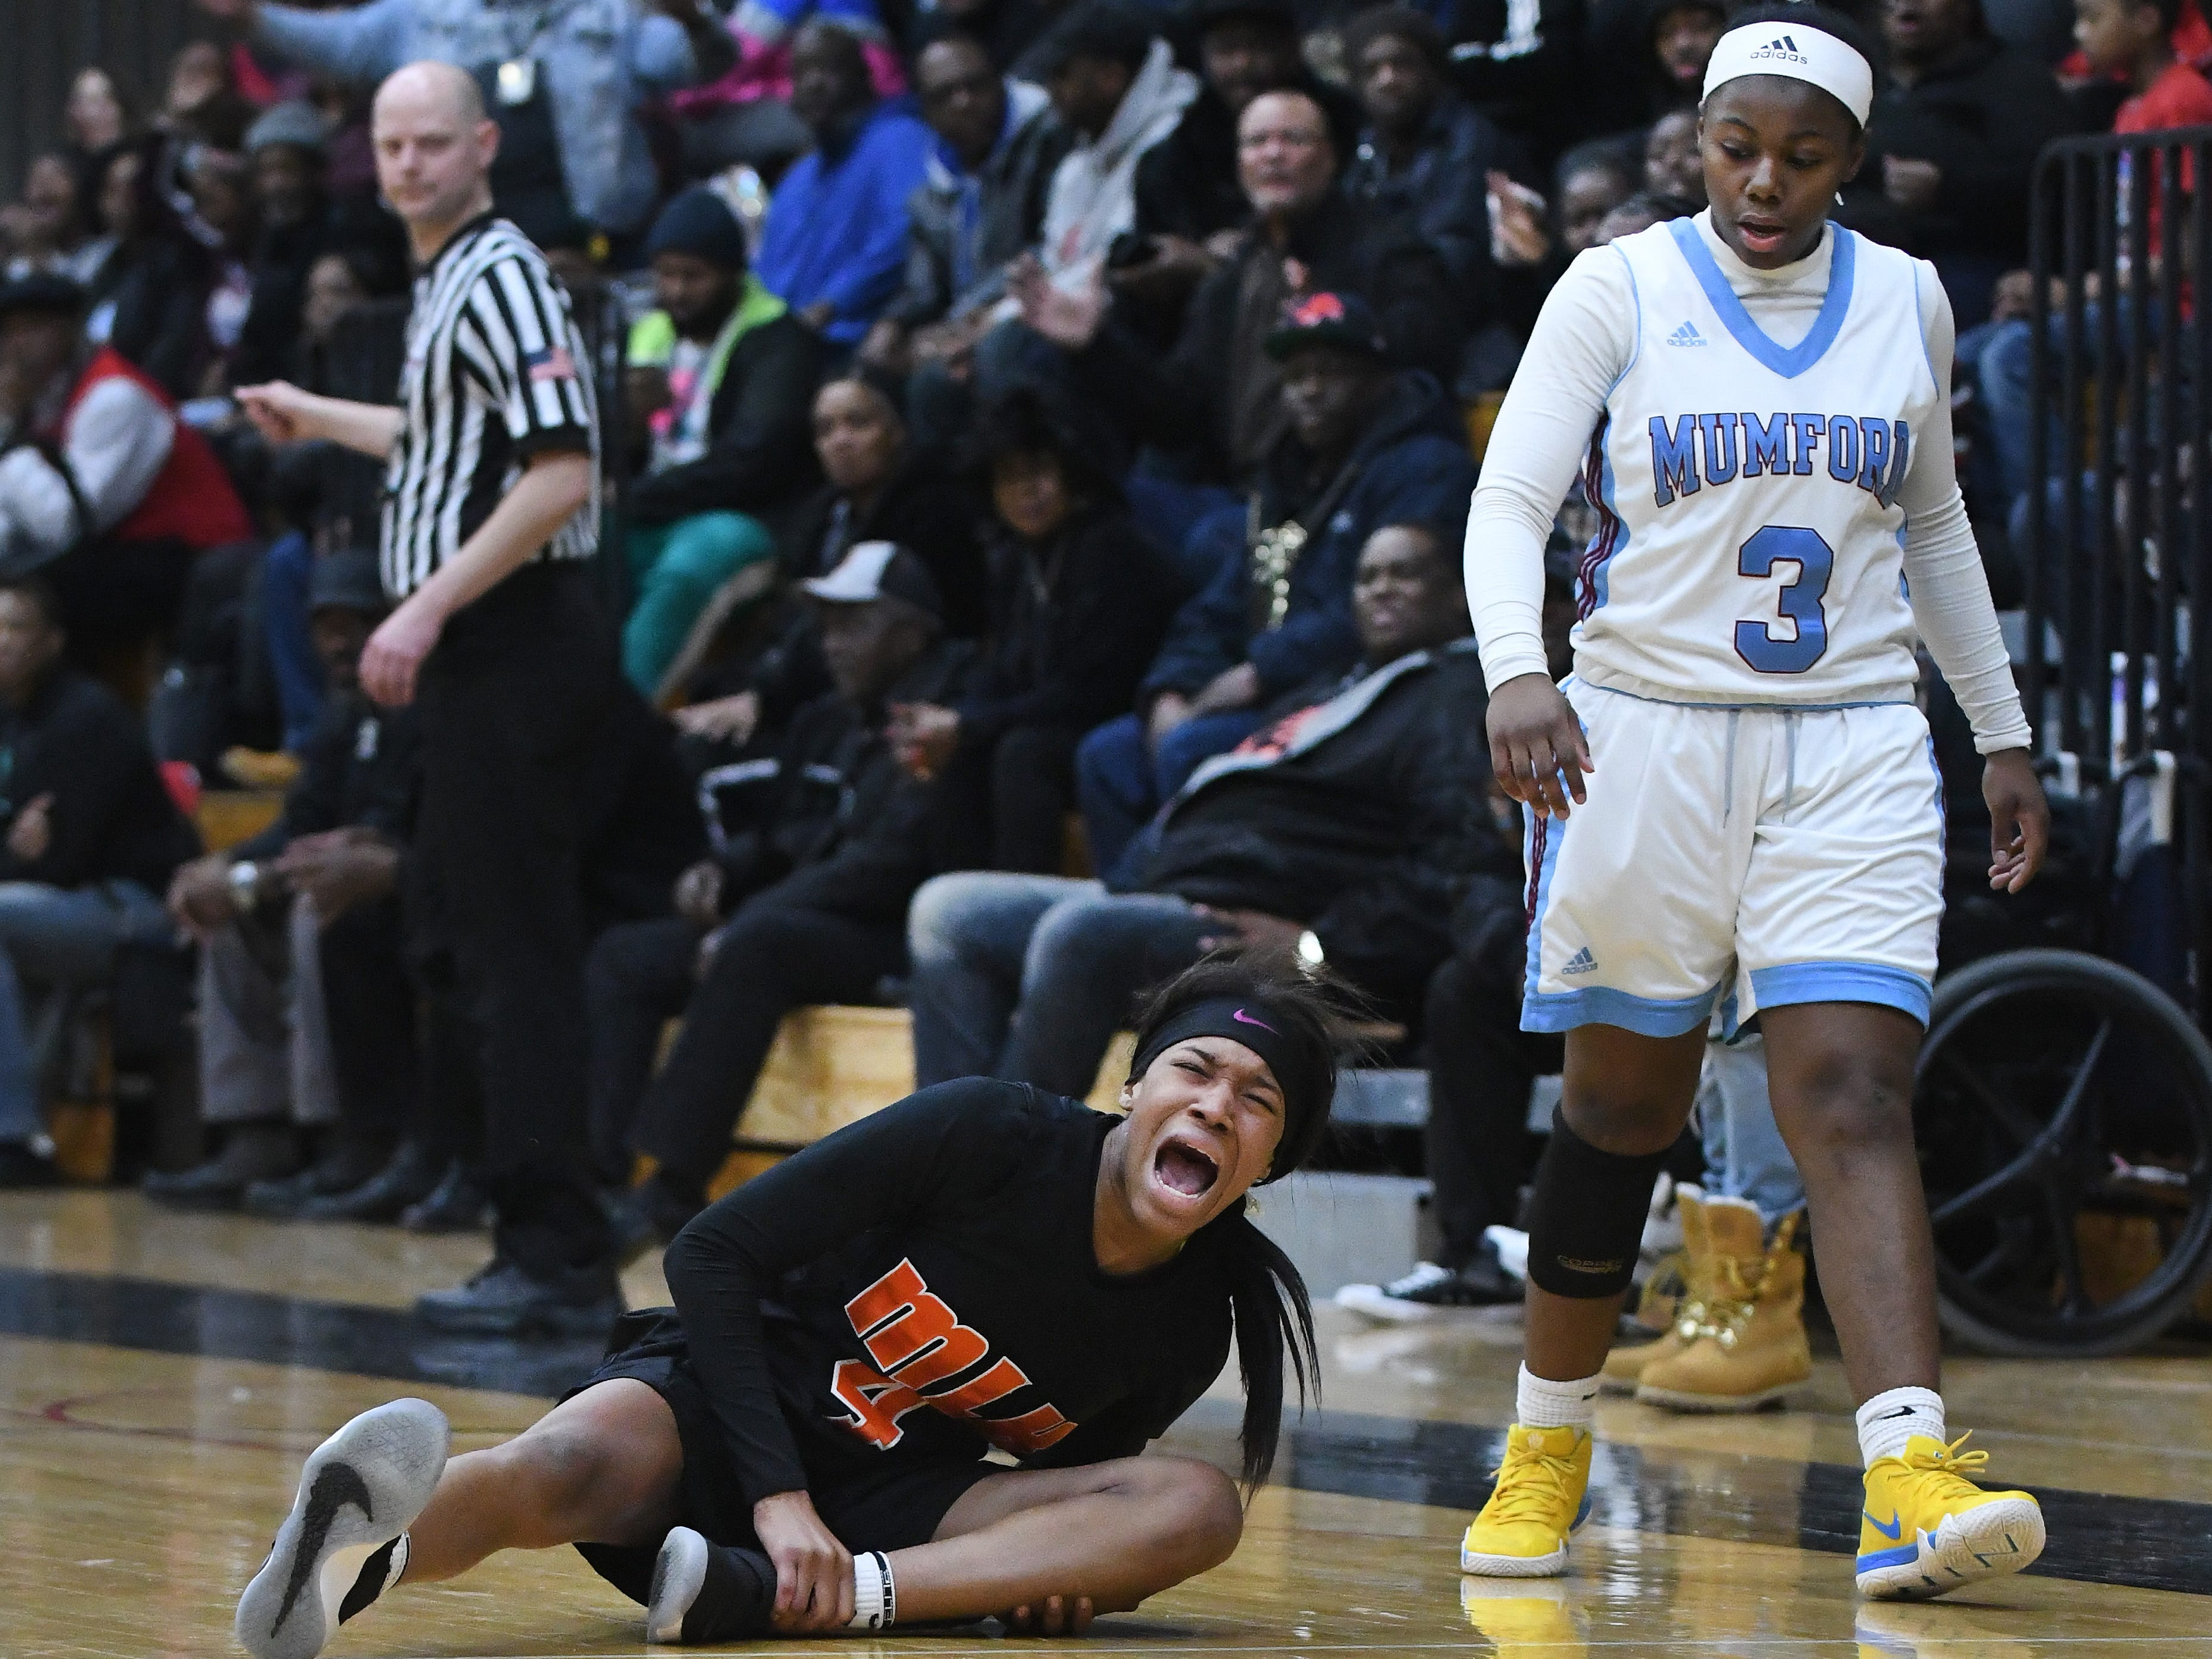 King's Del'Janae Williams twists her ankle on a hard foul as Mumford's Coreeahn Yharbrough walks past in the second half.